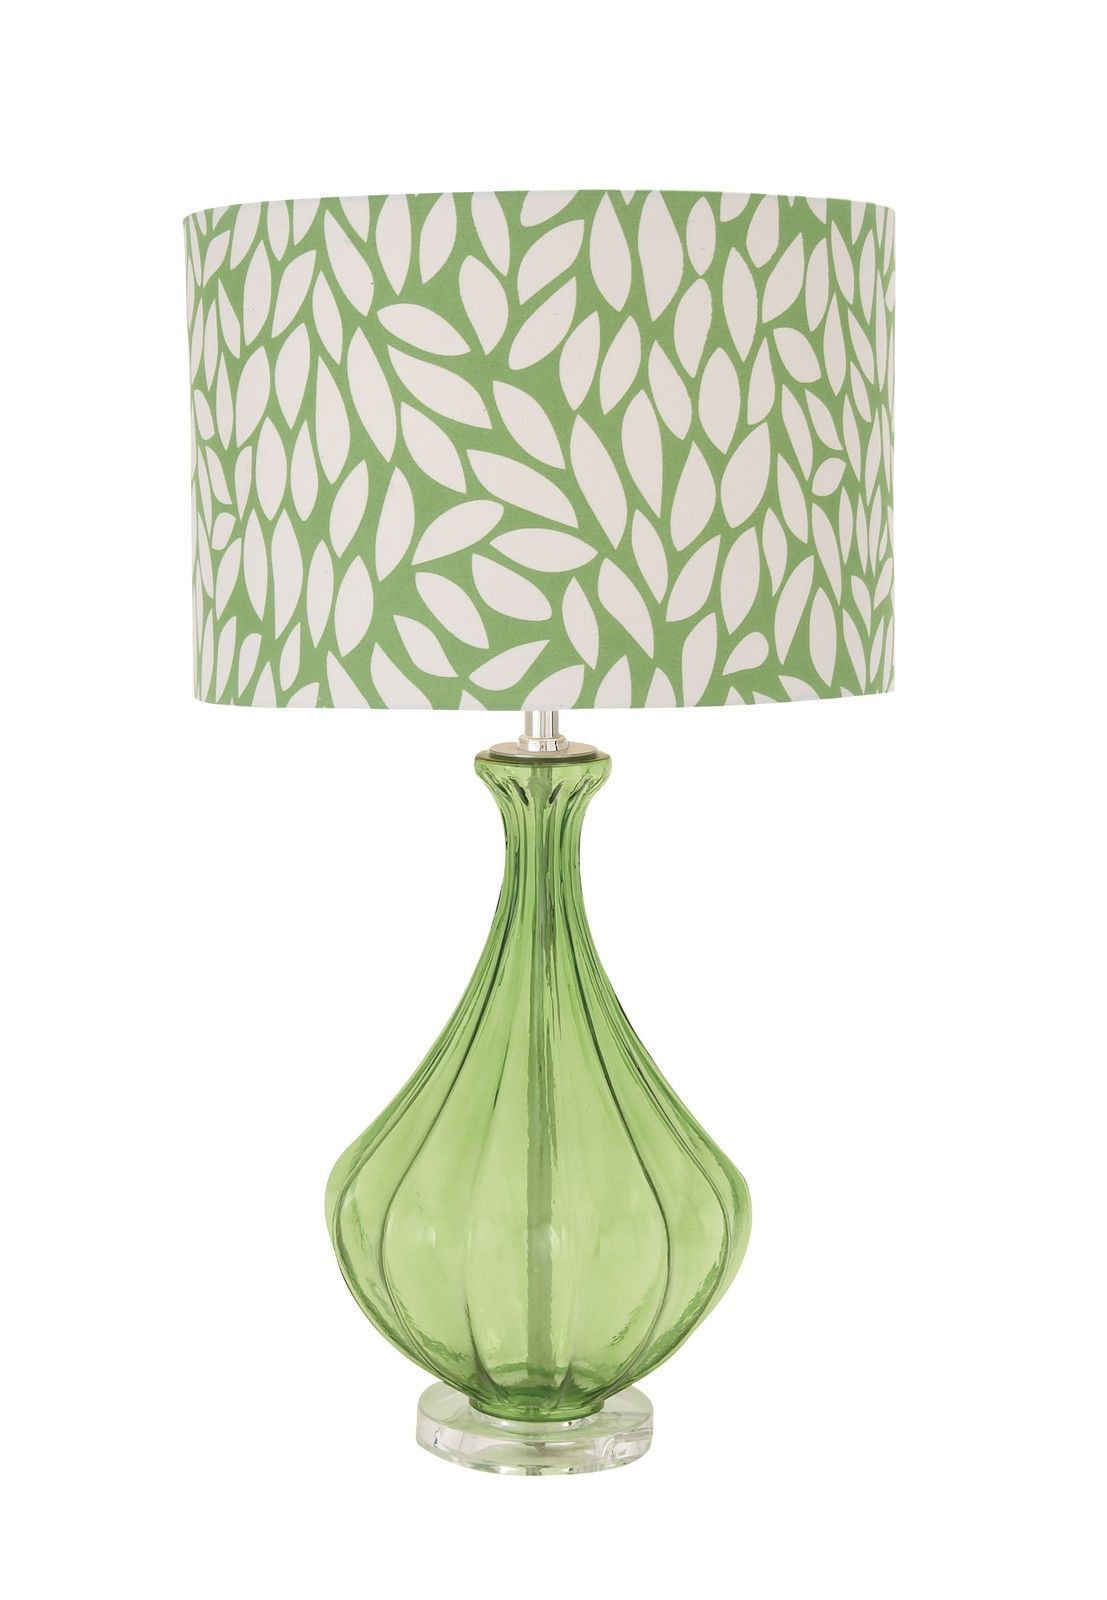 Modern leaf print 27 green white glass table lamp retro woodland imports 401 the cool green glass acrylic table lamp geotapseo Gallery